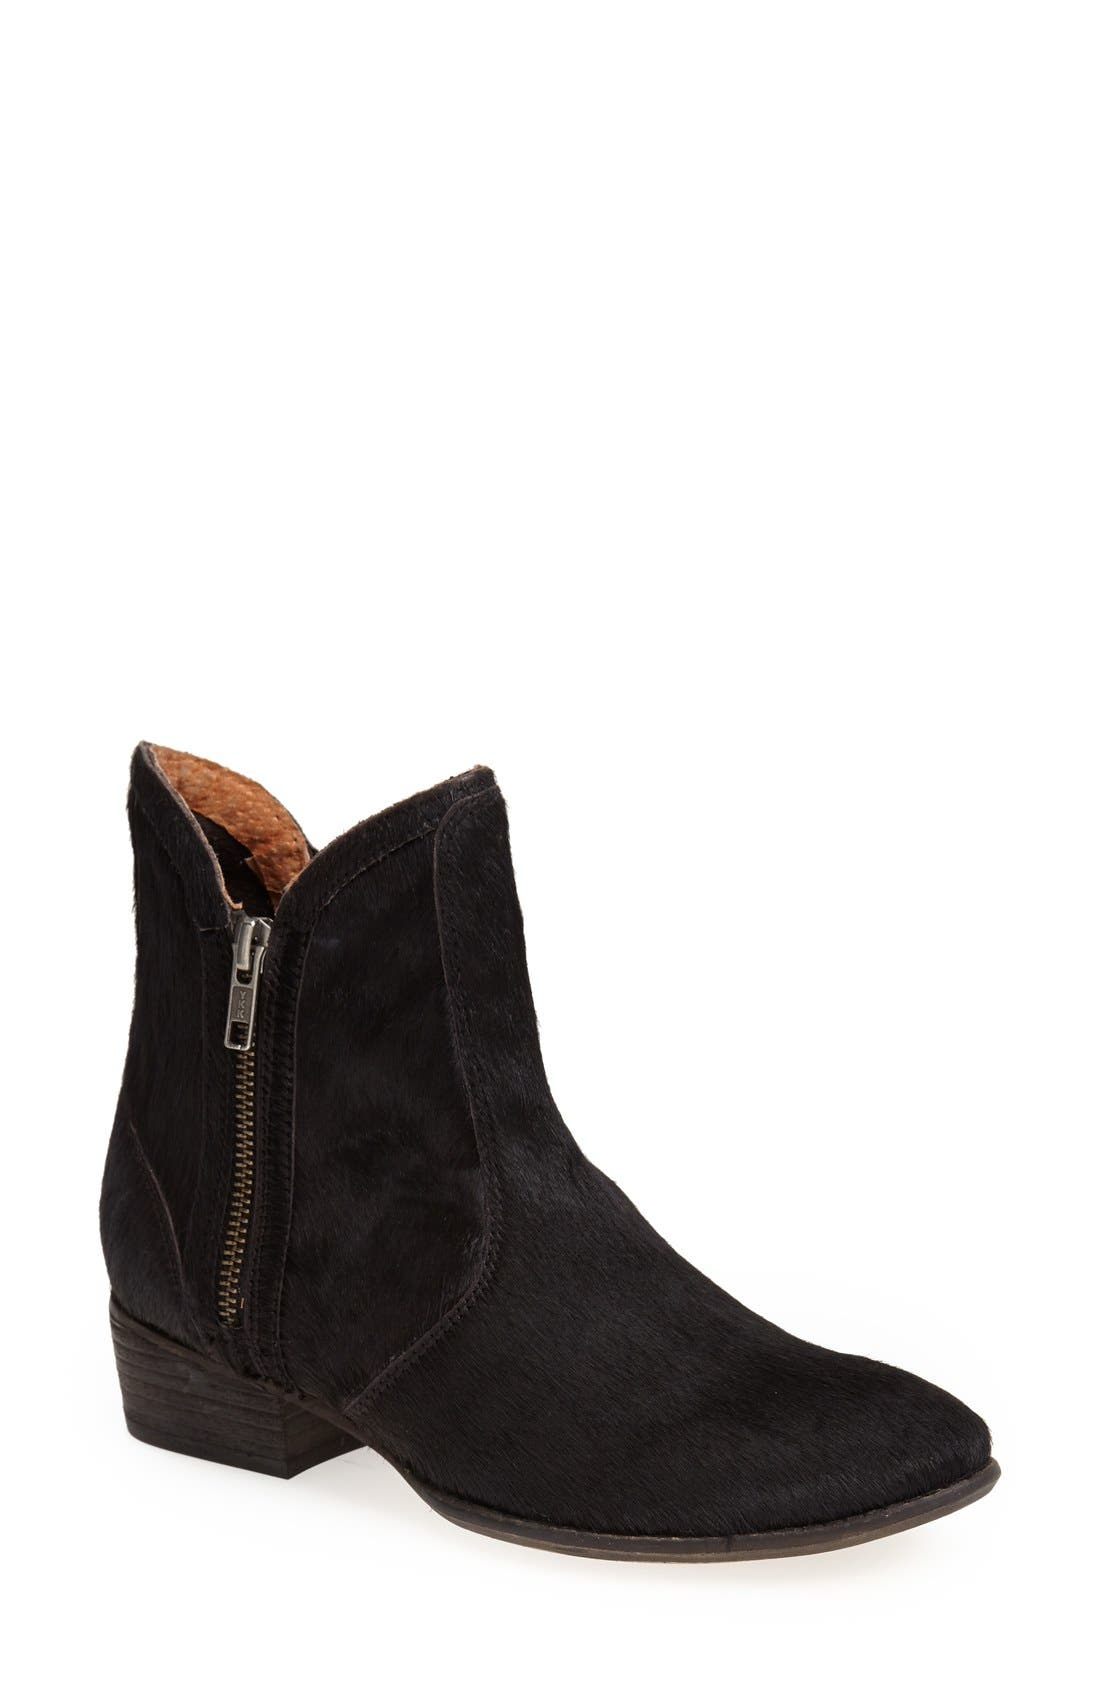 'Lucky Penny' Boot,                         Main,                         color, Black Ponyhair